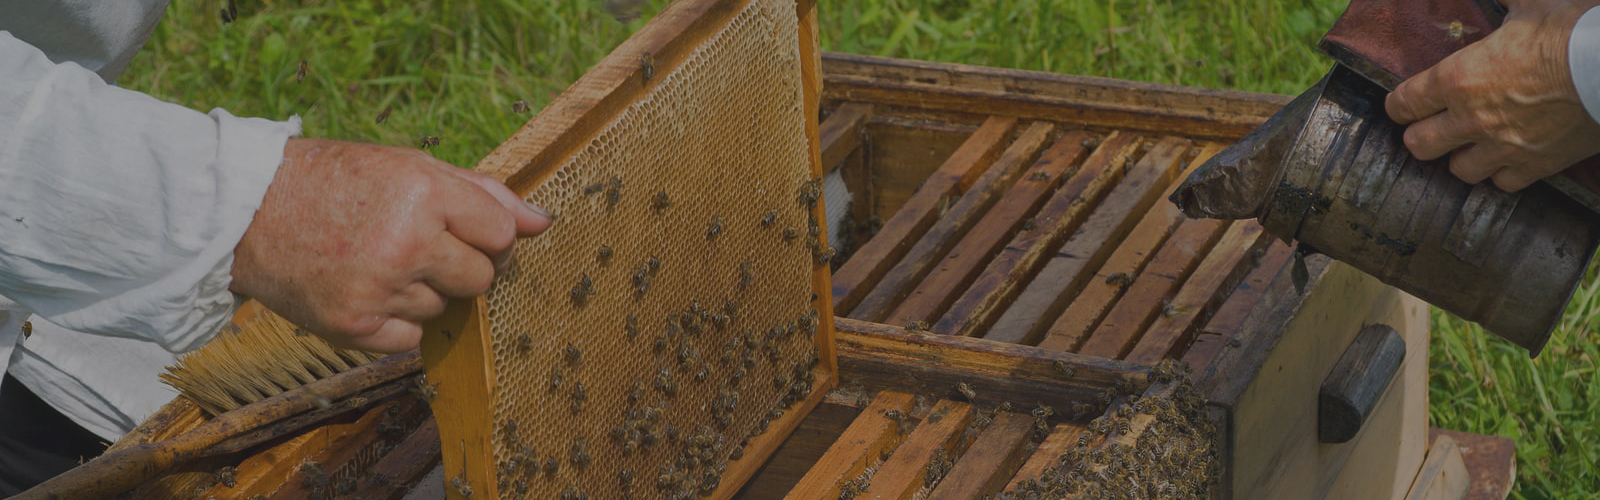 RPC Bee & Wasp Removal | Bee Hive Pollination